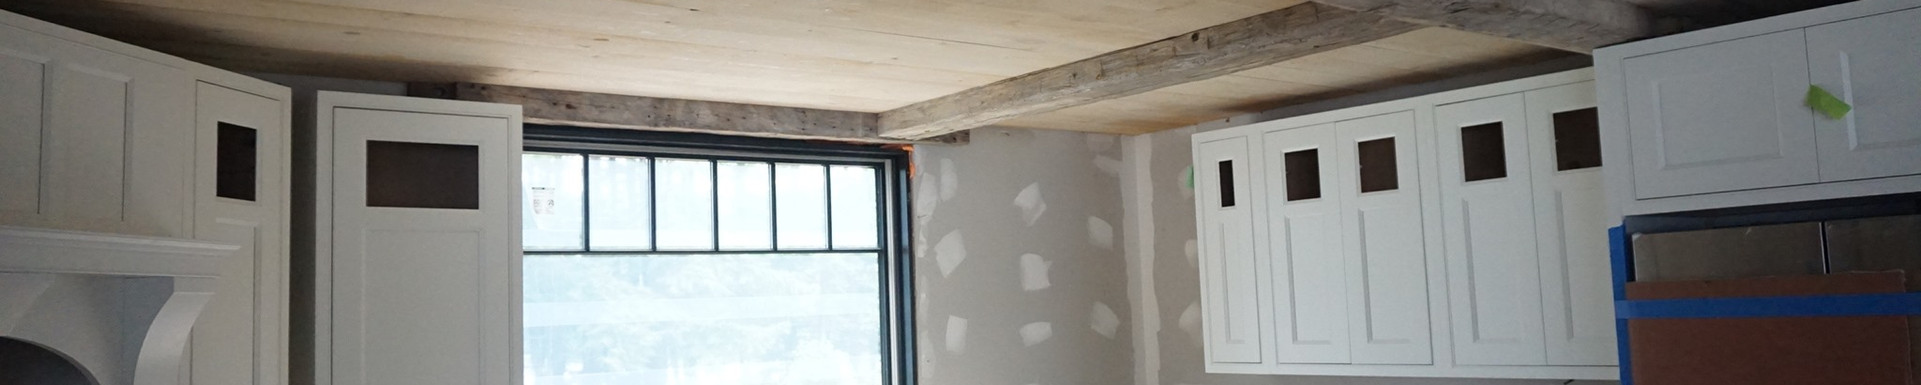 Reclaimed ceiling beams in new litchen